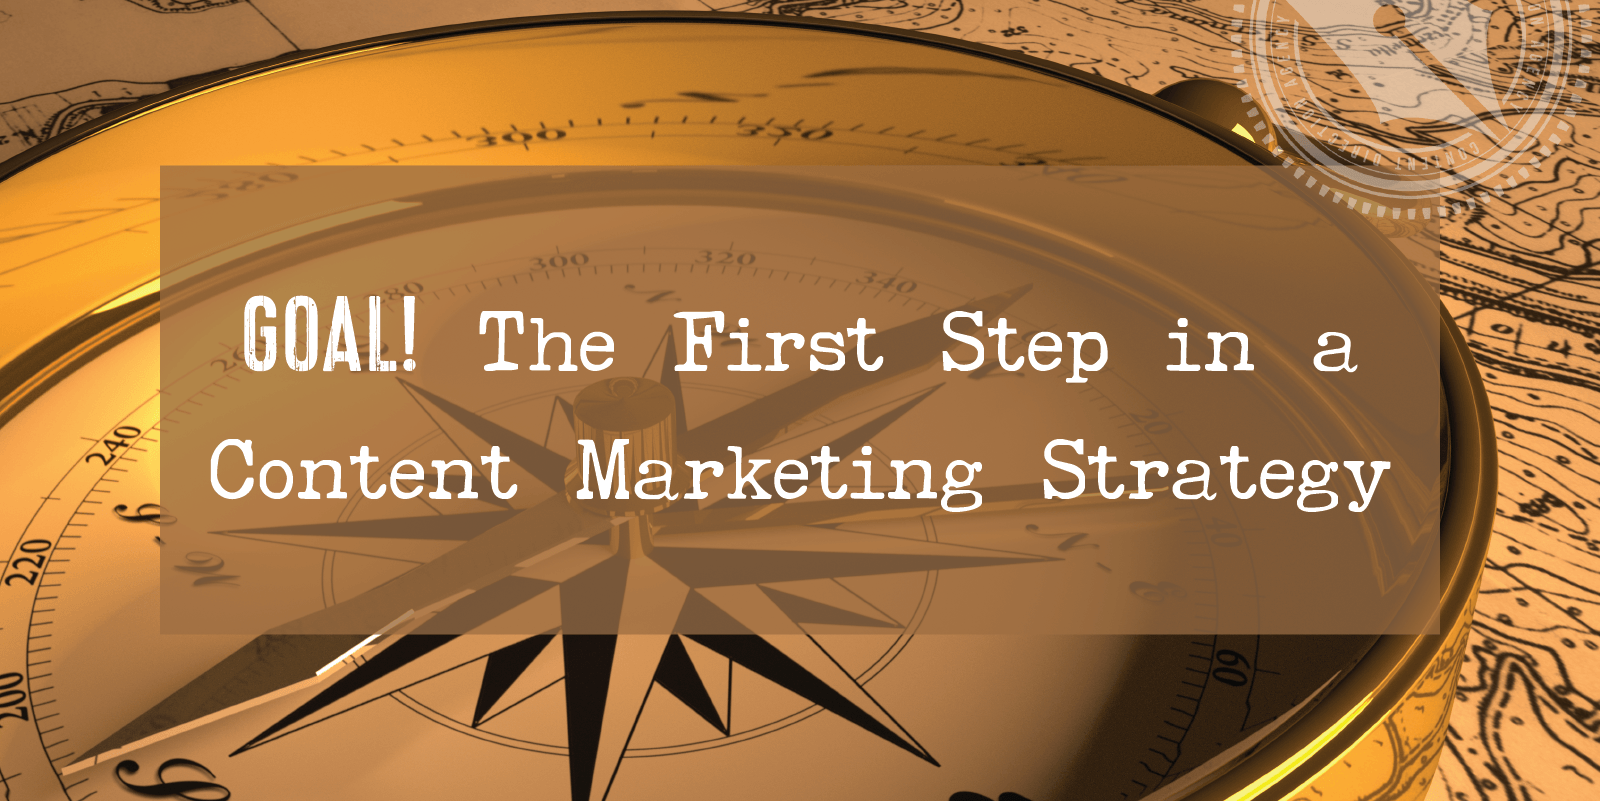 First step in a content marketing strategy.